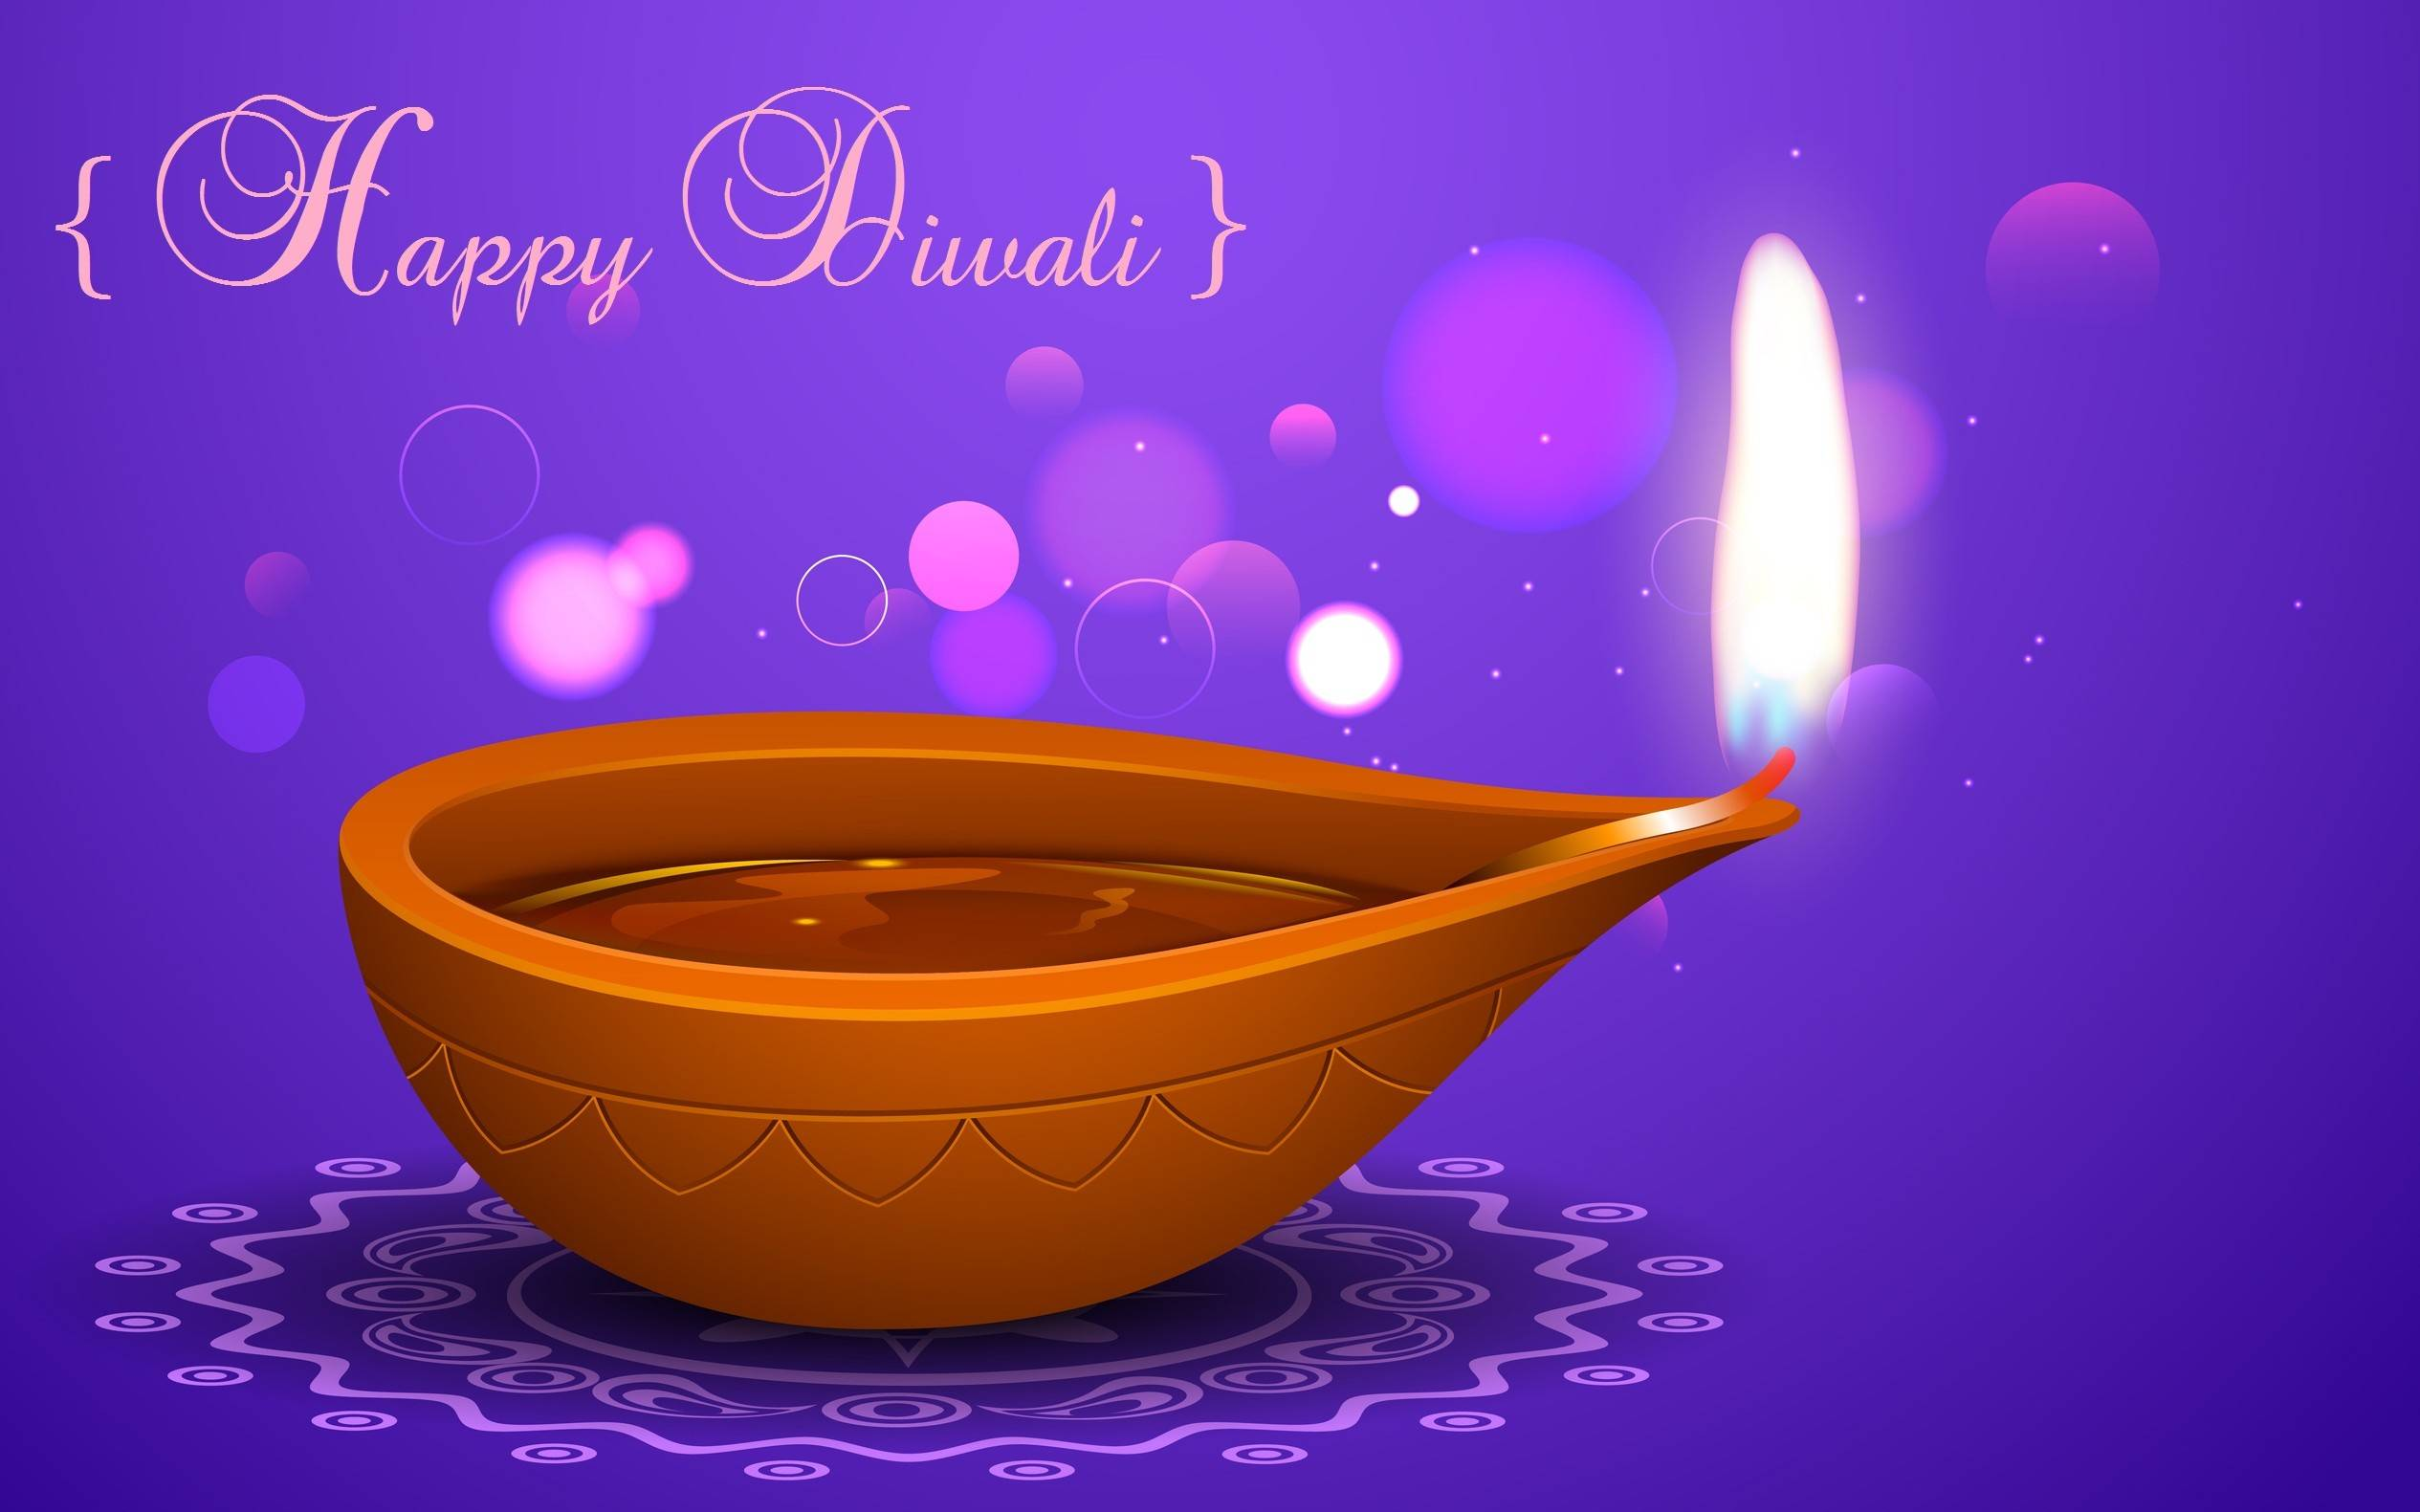 Happy Diwali Hd Images Wallpapers Picture Photos Download